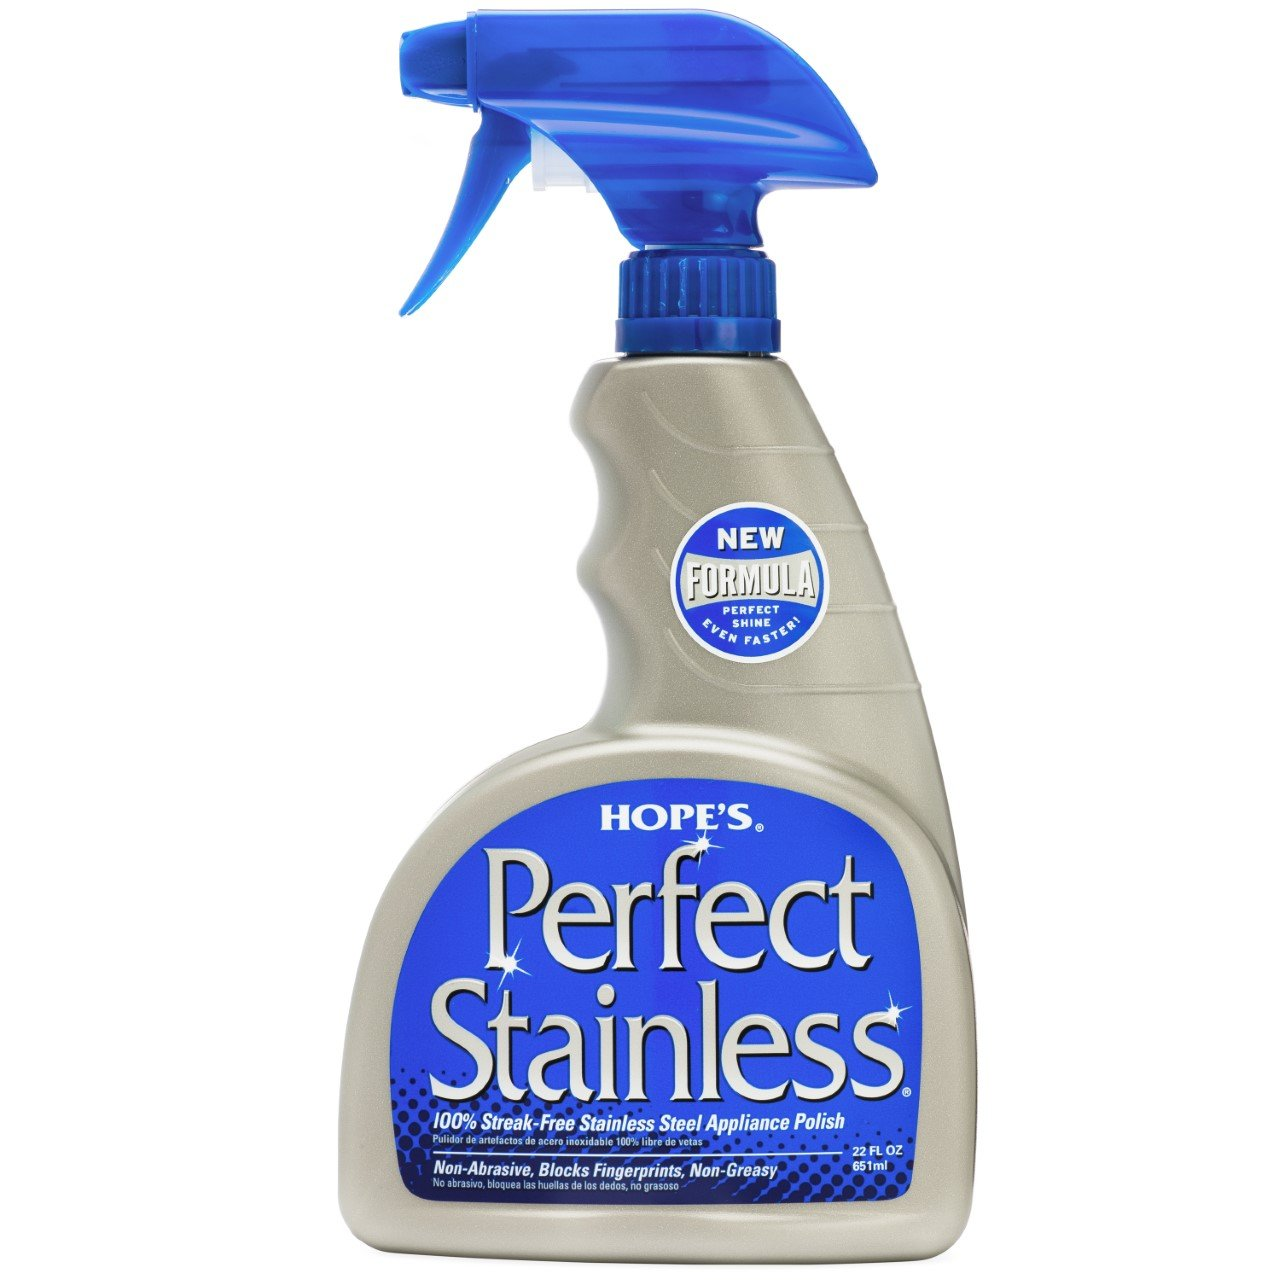 Hope's Perfect Stainless Steel Polish, 22-Ounce, Case of 6 by HOPE'S